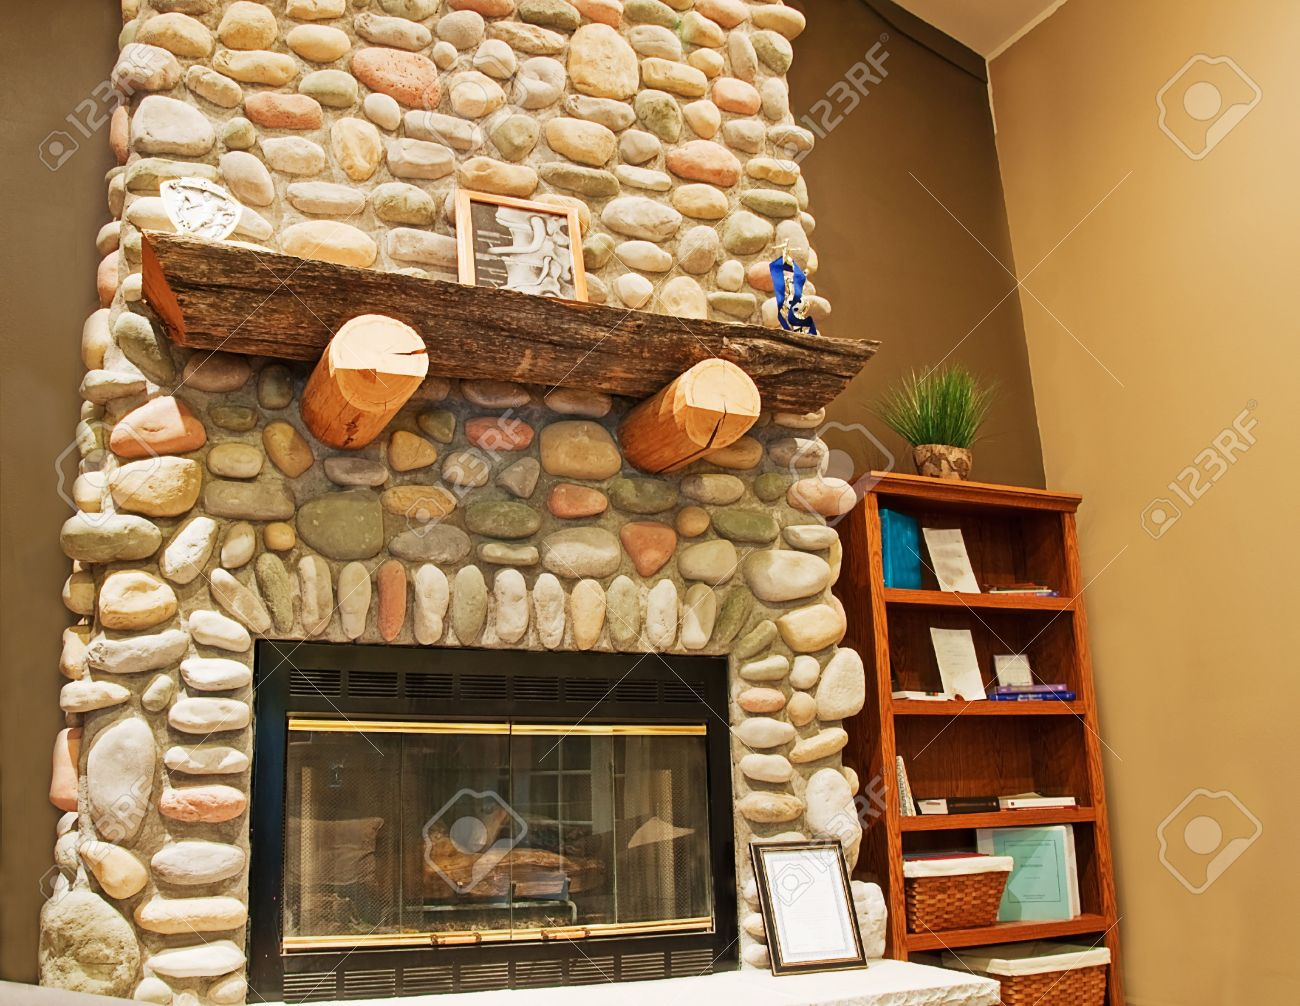 beautiful stone fireplaces. Stock Photo  This Beautiful Tall Stone Fireplace Is Featured In A Corner Of An Interior Room For Cozy Warm Feeling Beautiful Tall Stone Fireplace Is Featured In A Corner Of